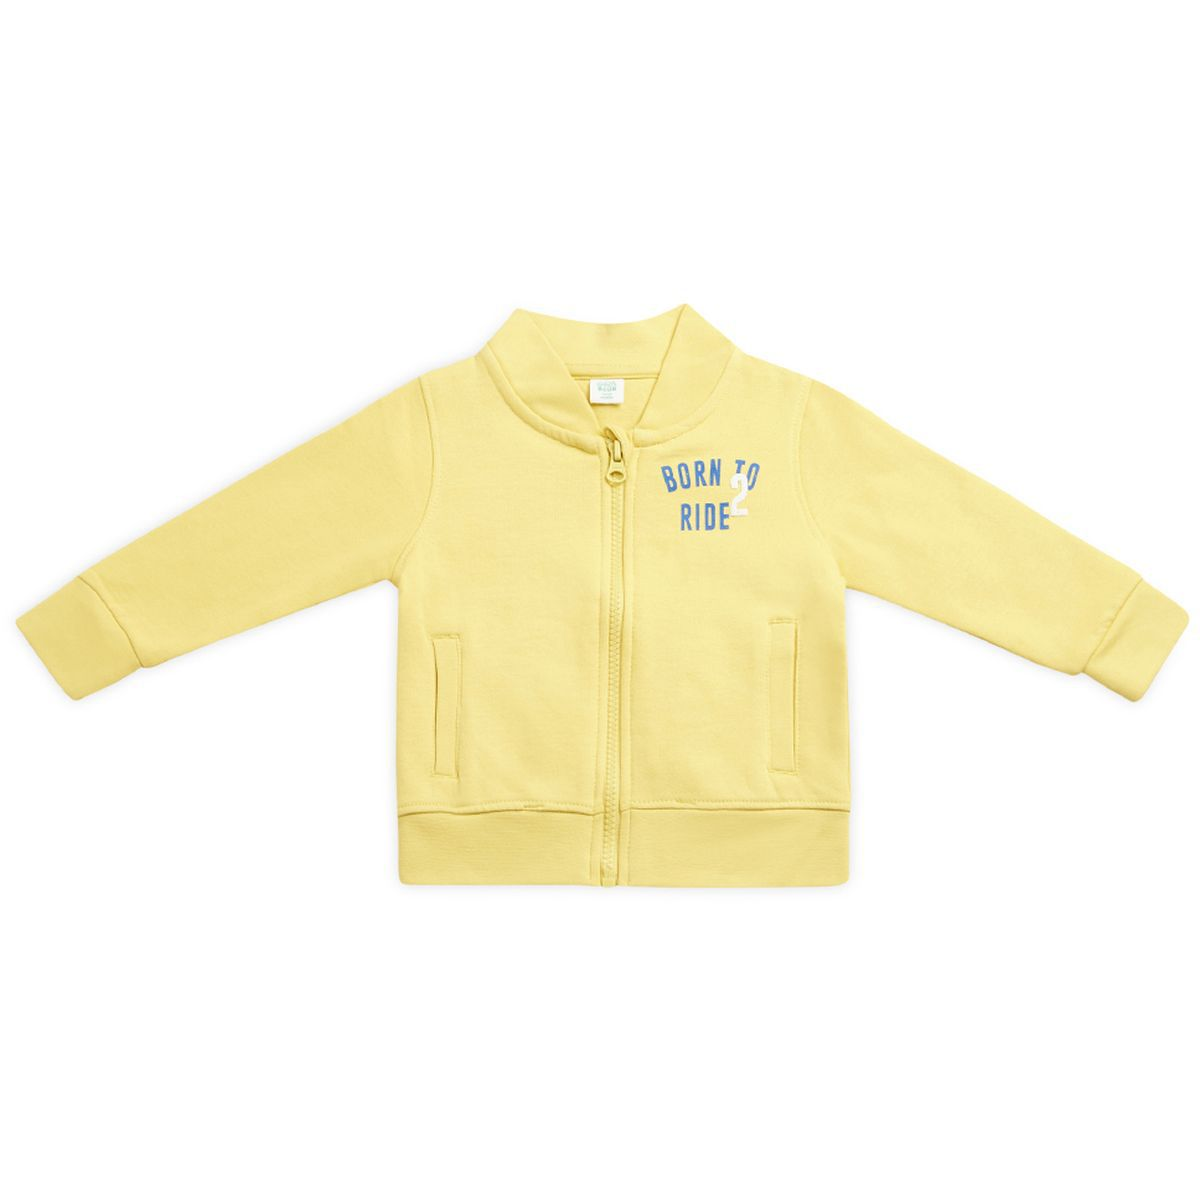 3f47083a5 FS MiniKlub Baby Boys Multi Color Sweatshirts - Buy FS MiniKlub Baby Boys  Multi Color Sweatshirts Online at Low Price - Snapdeal